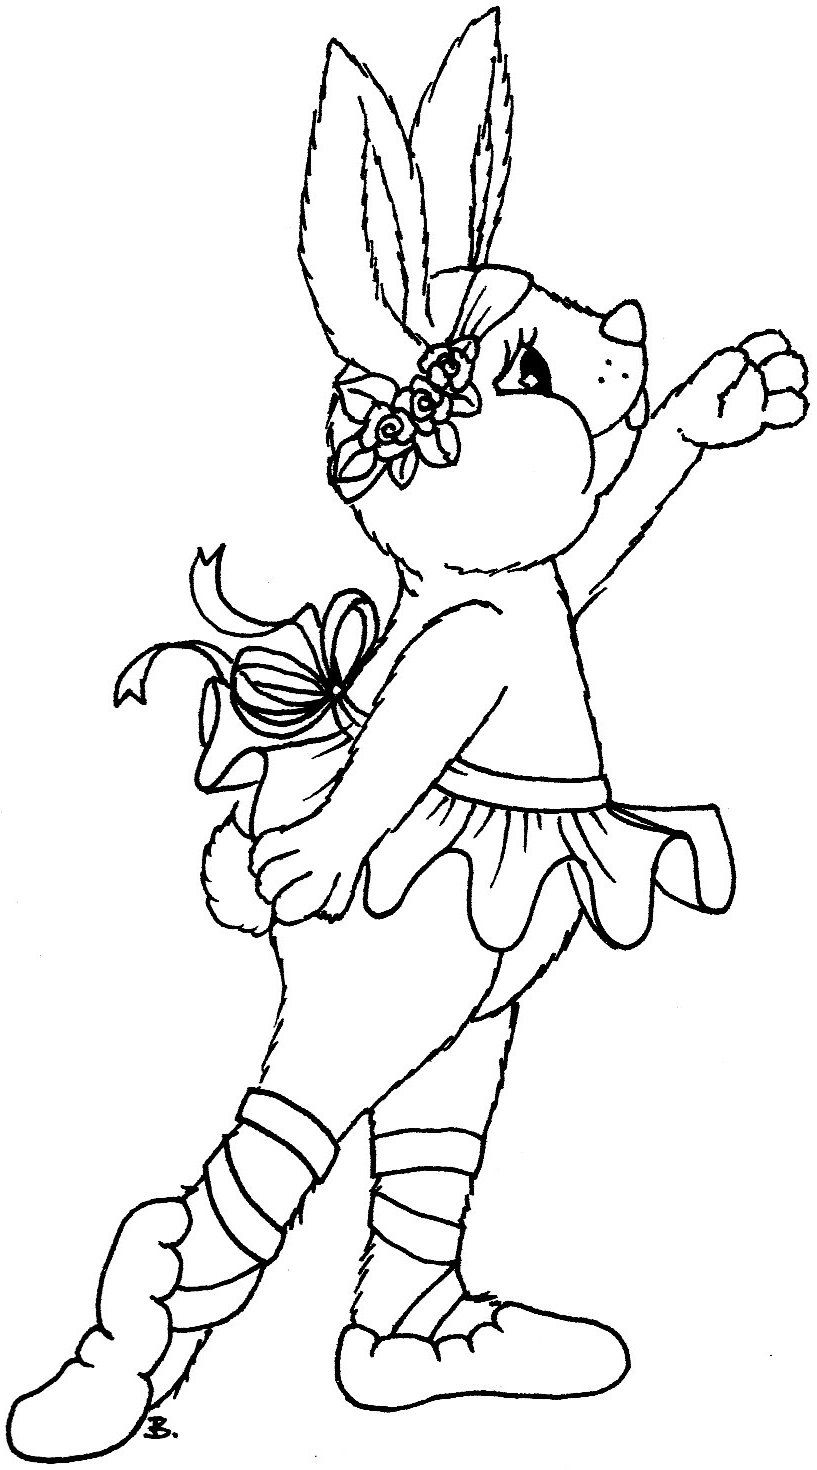 Ballerina Bunny With Images Dance Coloring Pages Ballerina